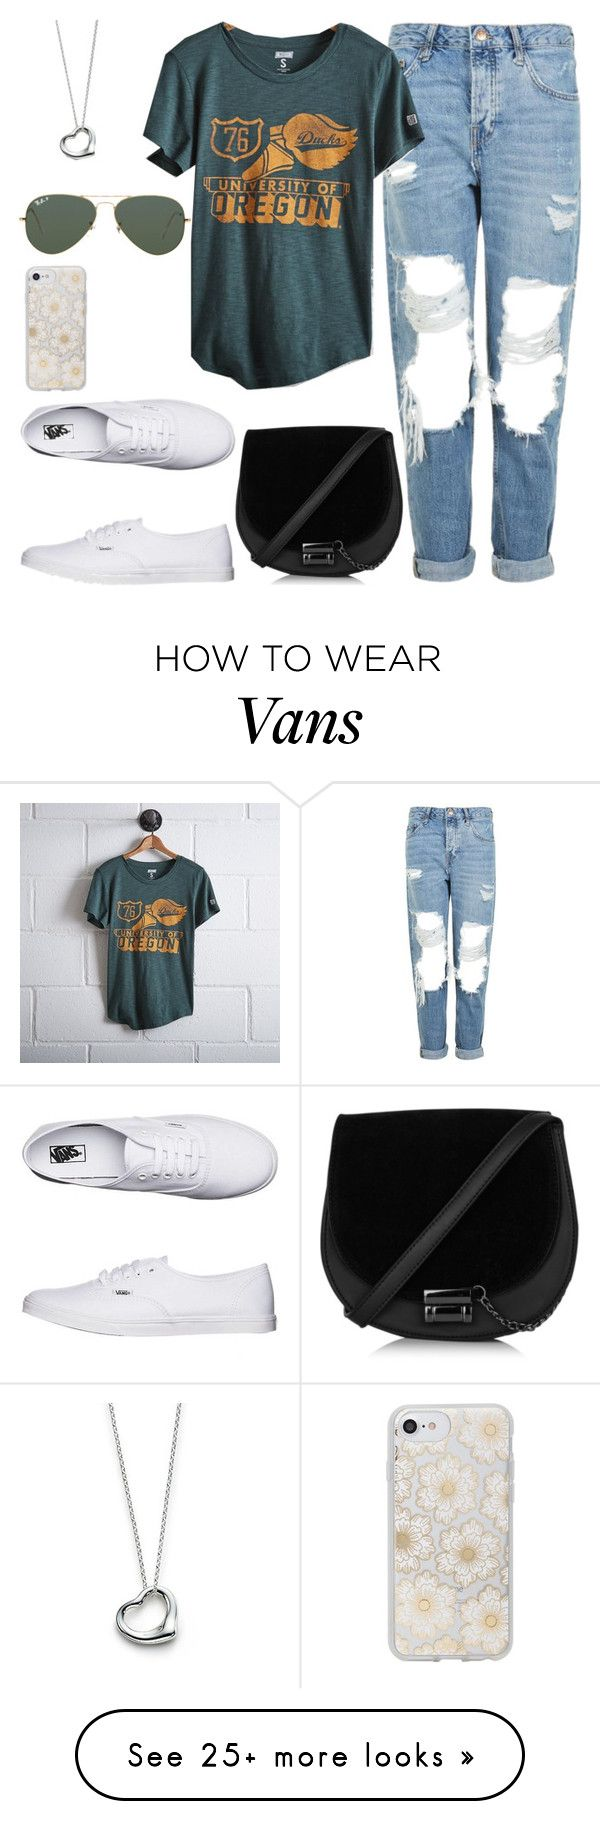 """Untitled #175"" by findthefinerthings on Polyvore featuring Vans, Topshop, Tailgate, Elsa Peretti, Ray-Ban and Sonix"